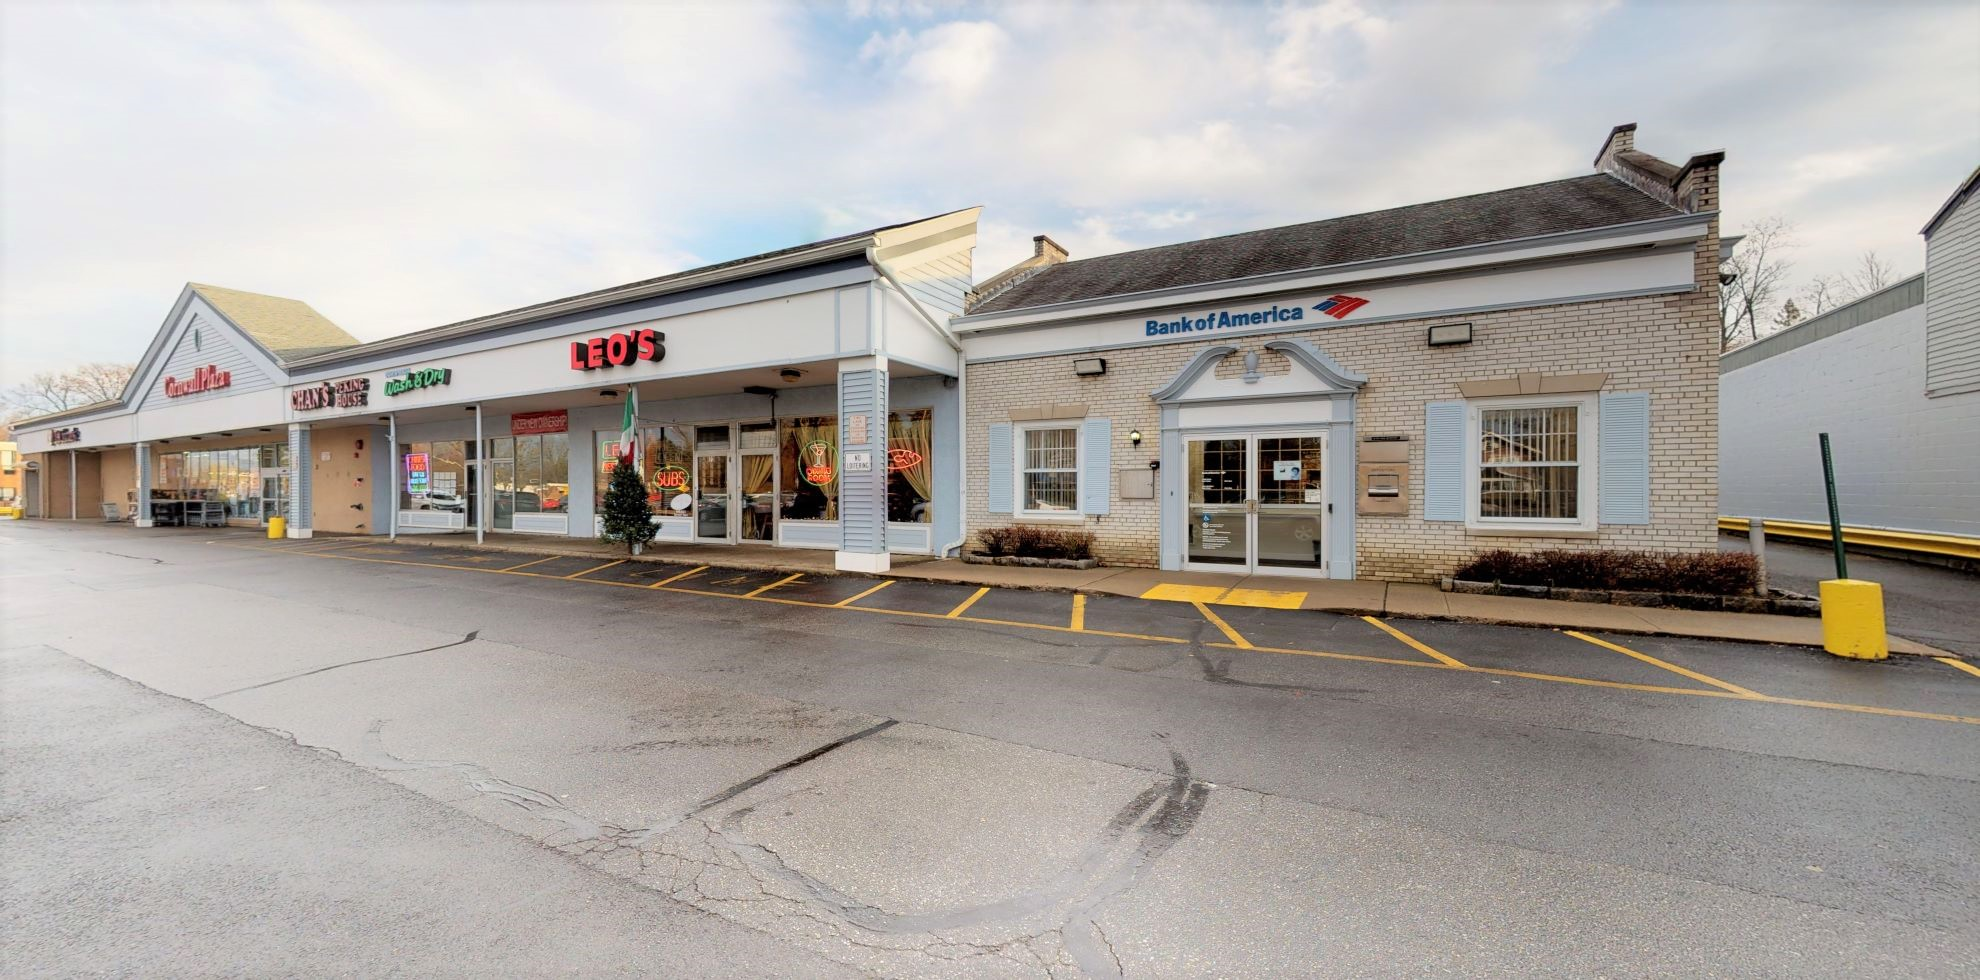 Bank of America financial center with walk-up ATM   25 Quaker Ave, Cornwall, NY 12518